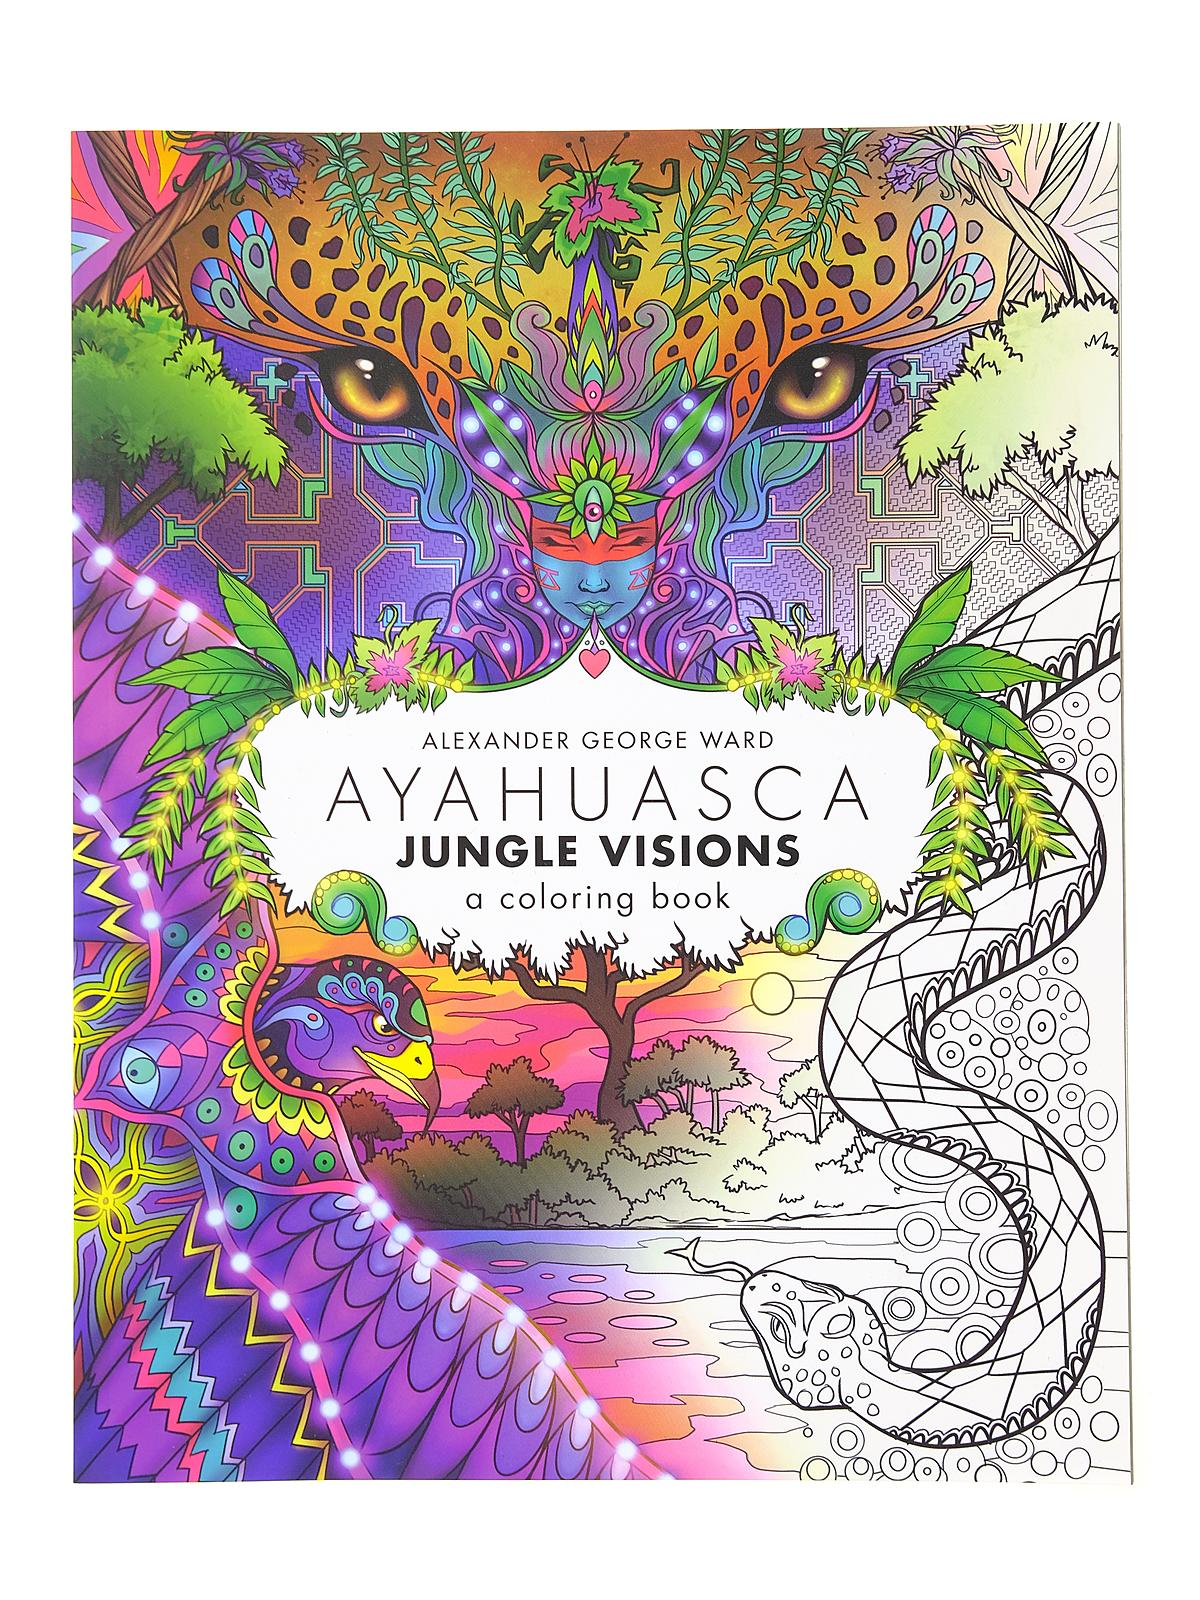 Ayahuasca Jungle Visions Coloring Book